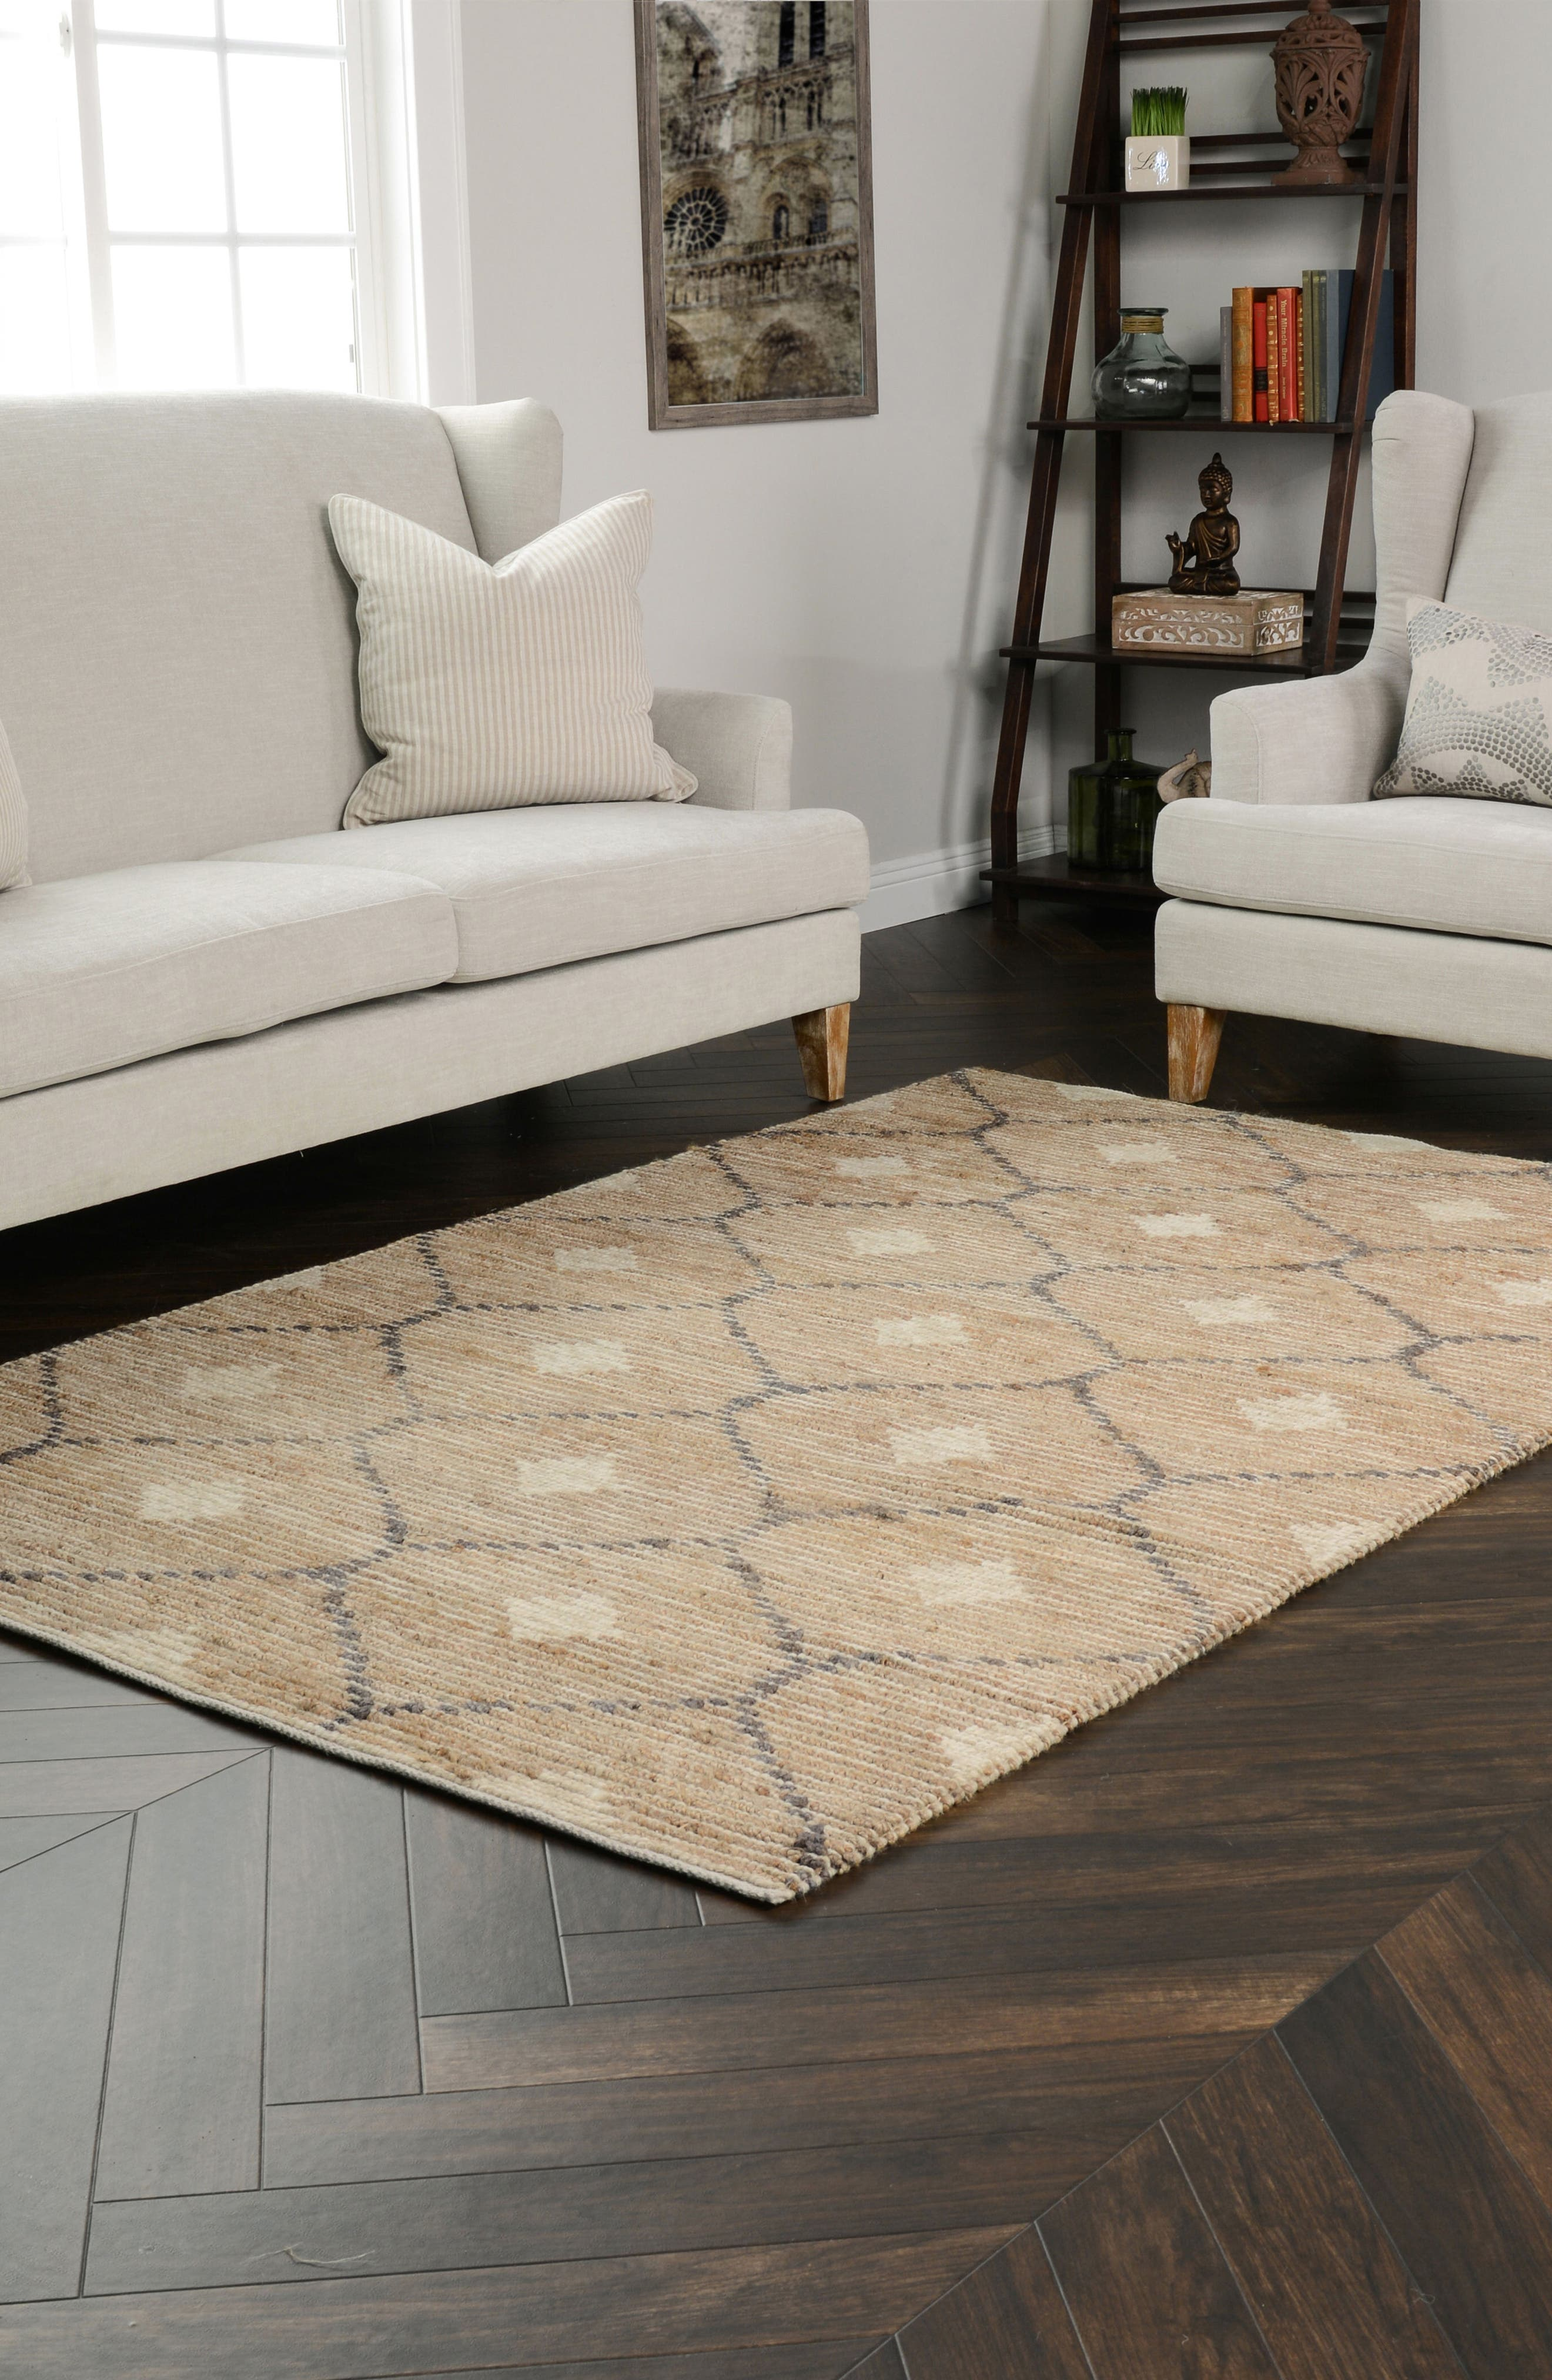 Rustica Handwoven Rug,                             Alternate thumbnail 5, color,                             250